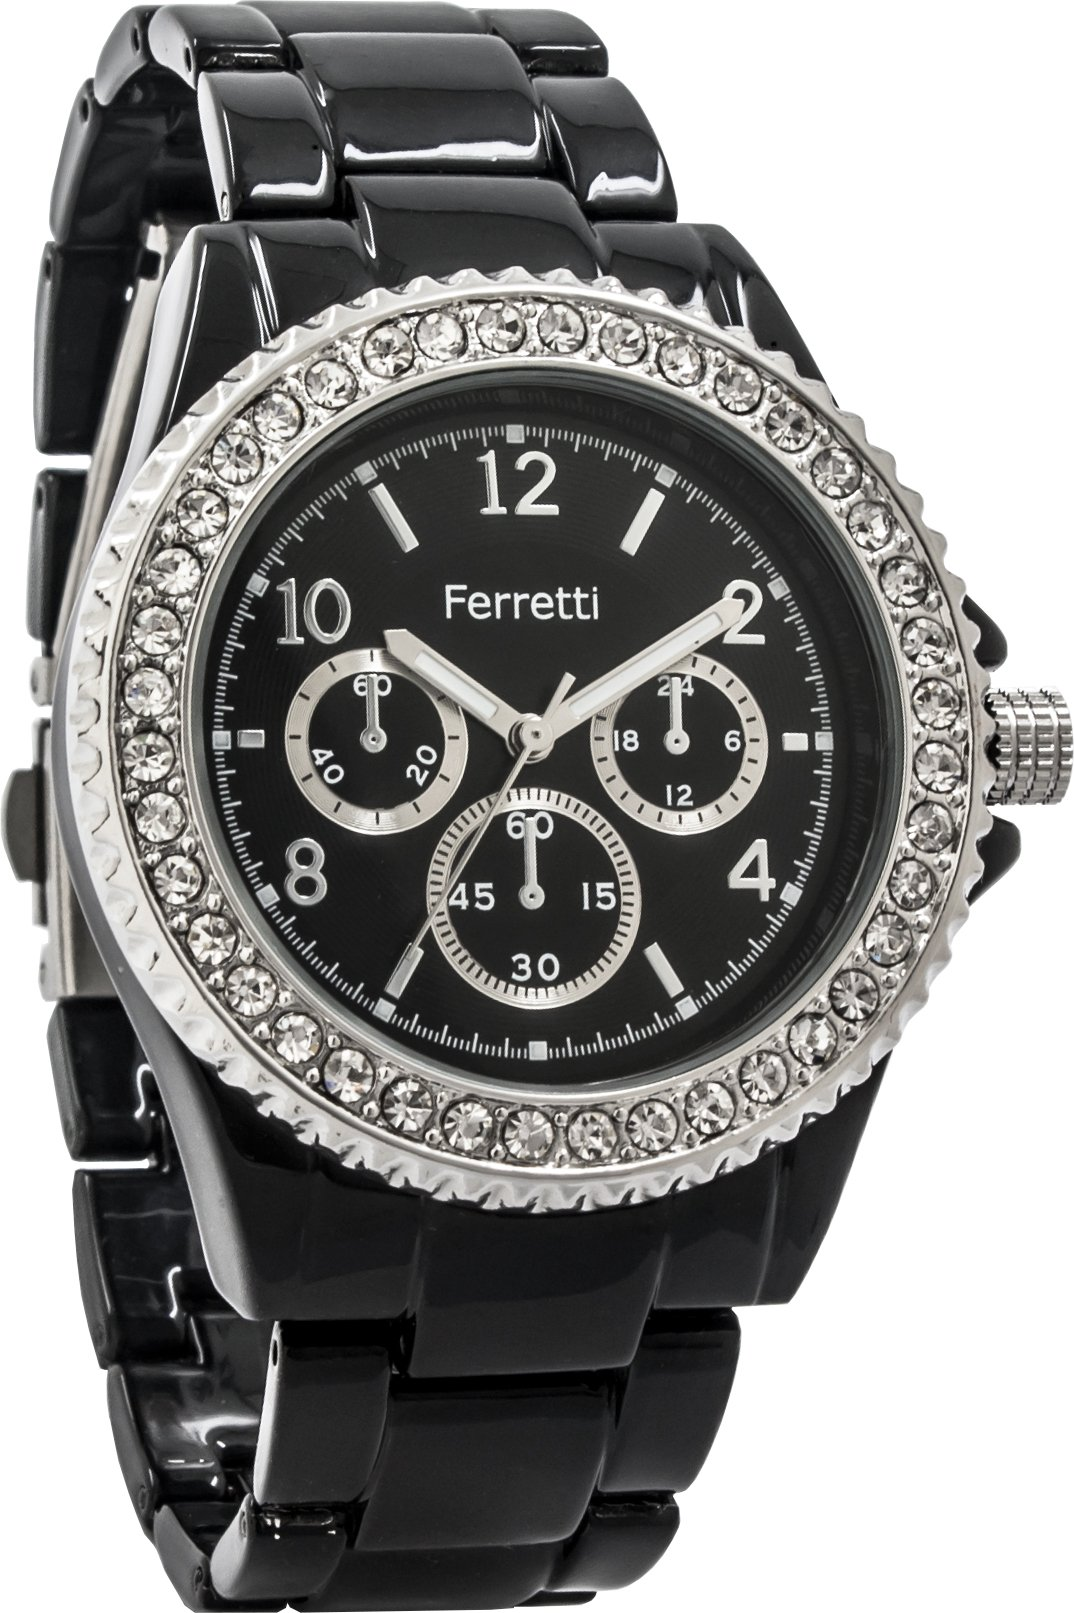 Ferretti Women's | Sophisticated Black Diamond-Studded Bezel Bracelet Watch | FT12803 by Ferretti